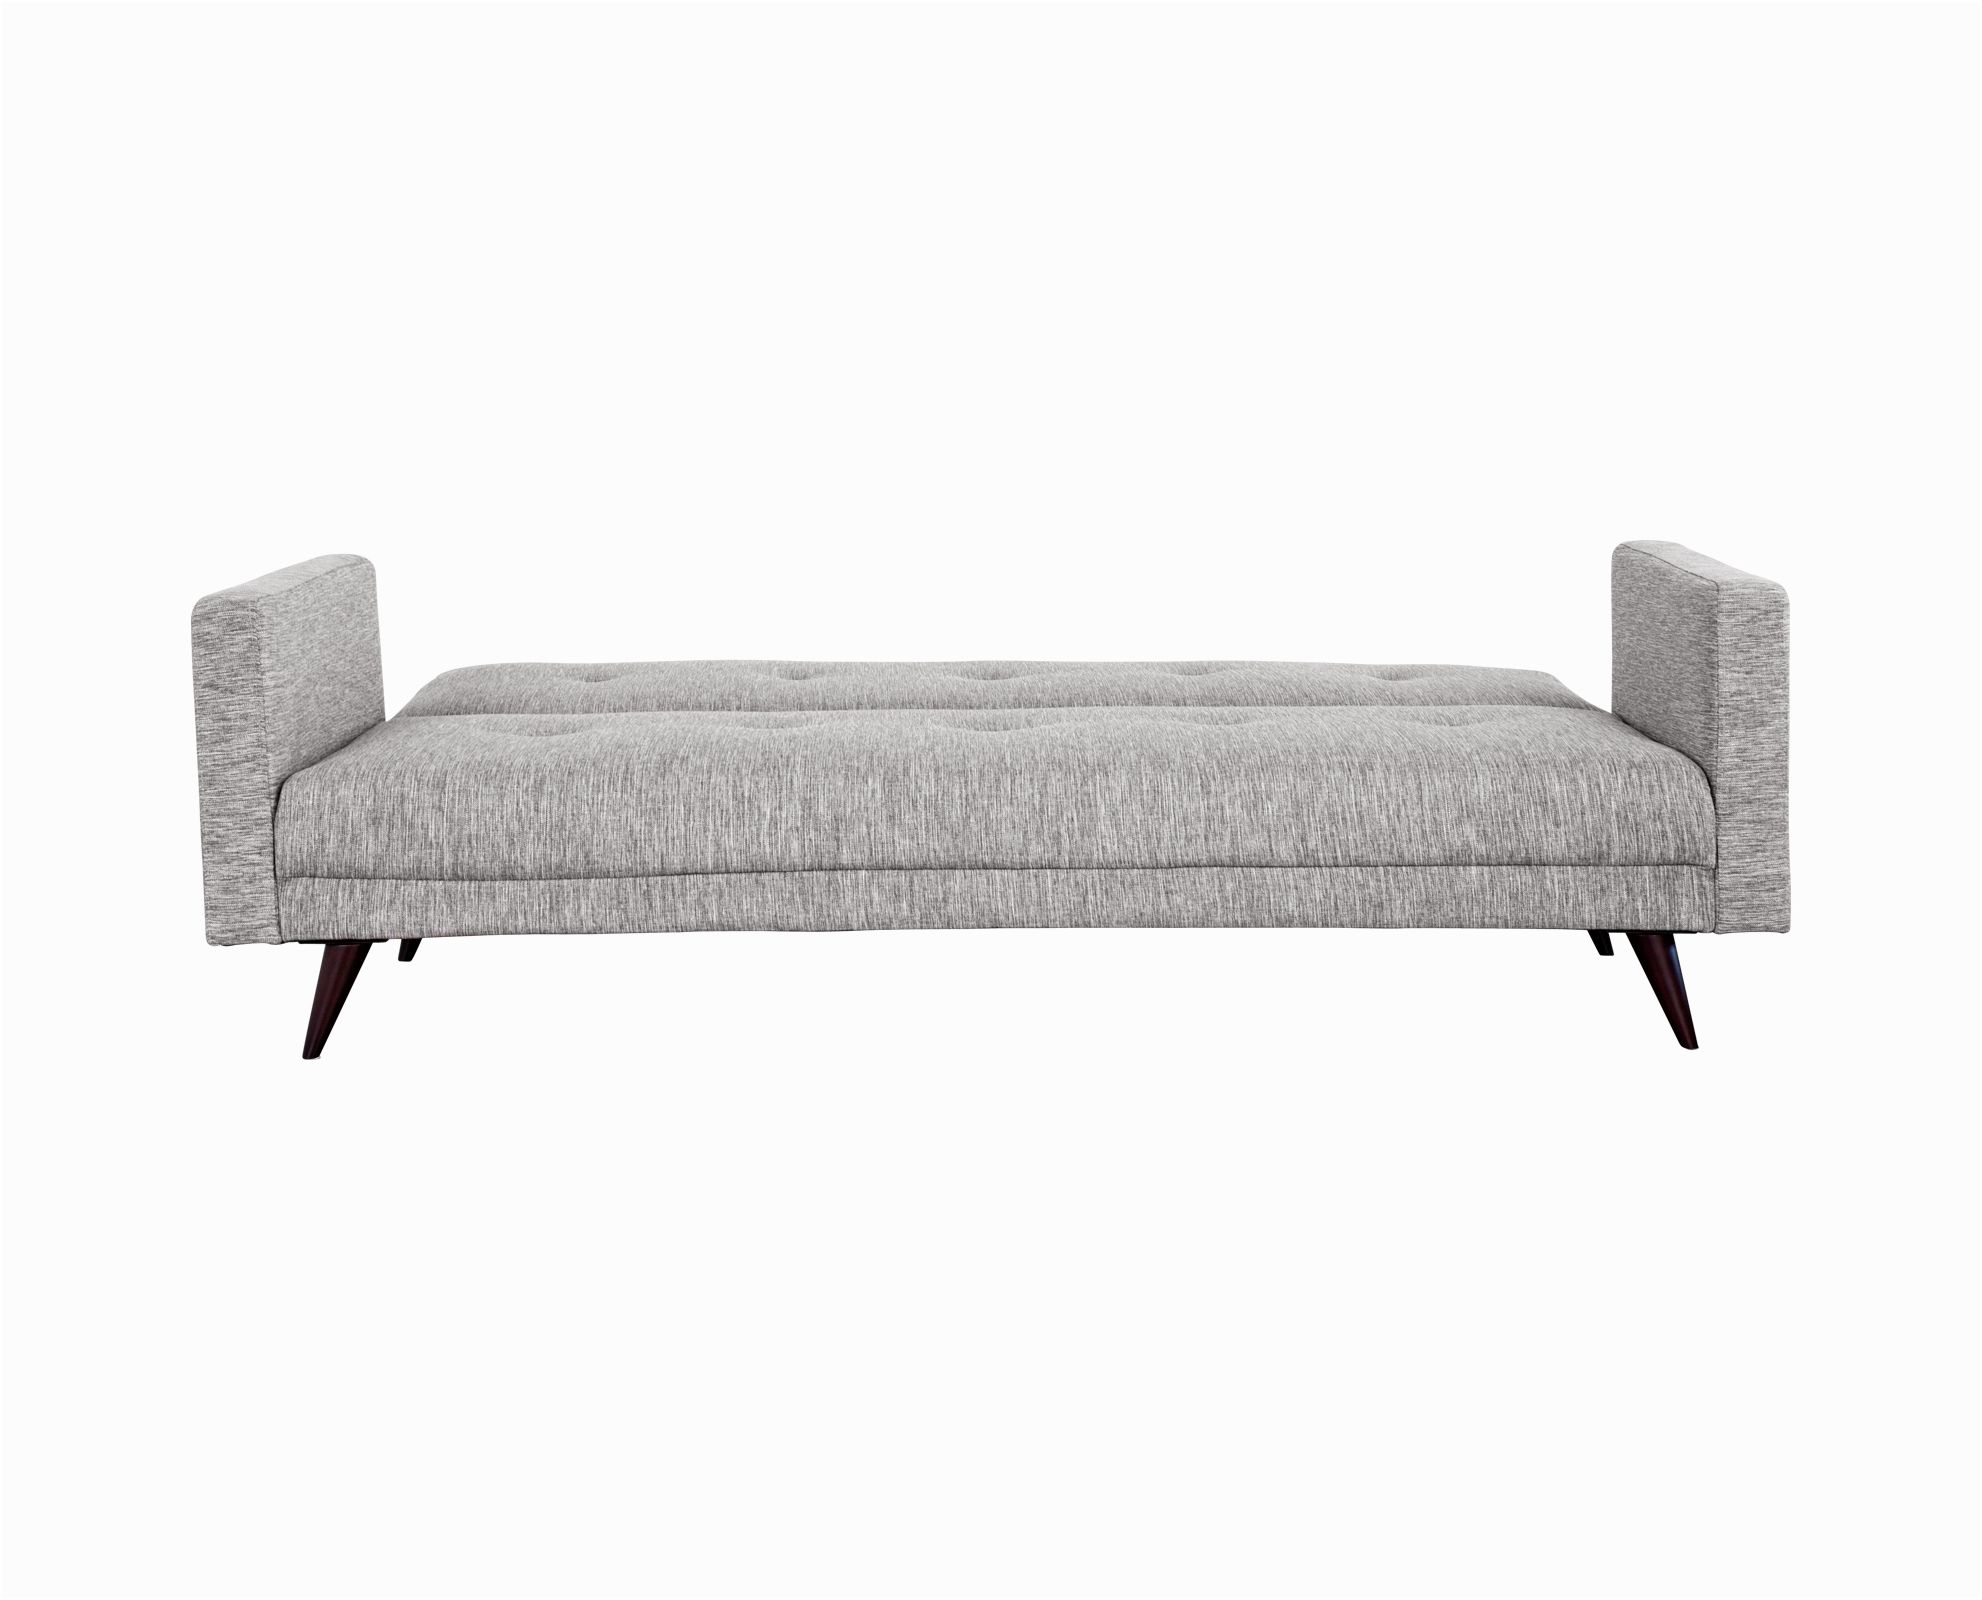 contemporary convertible sectional sofa bed layout-Inspirational Convertible Sectional sofa Bed Online